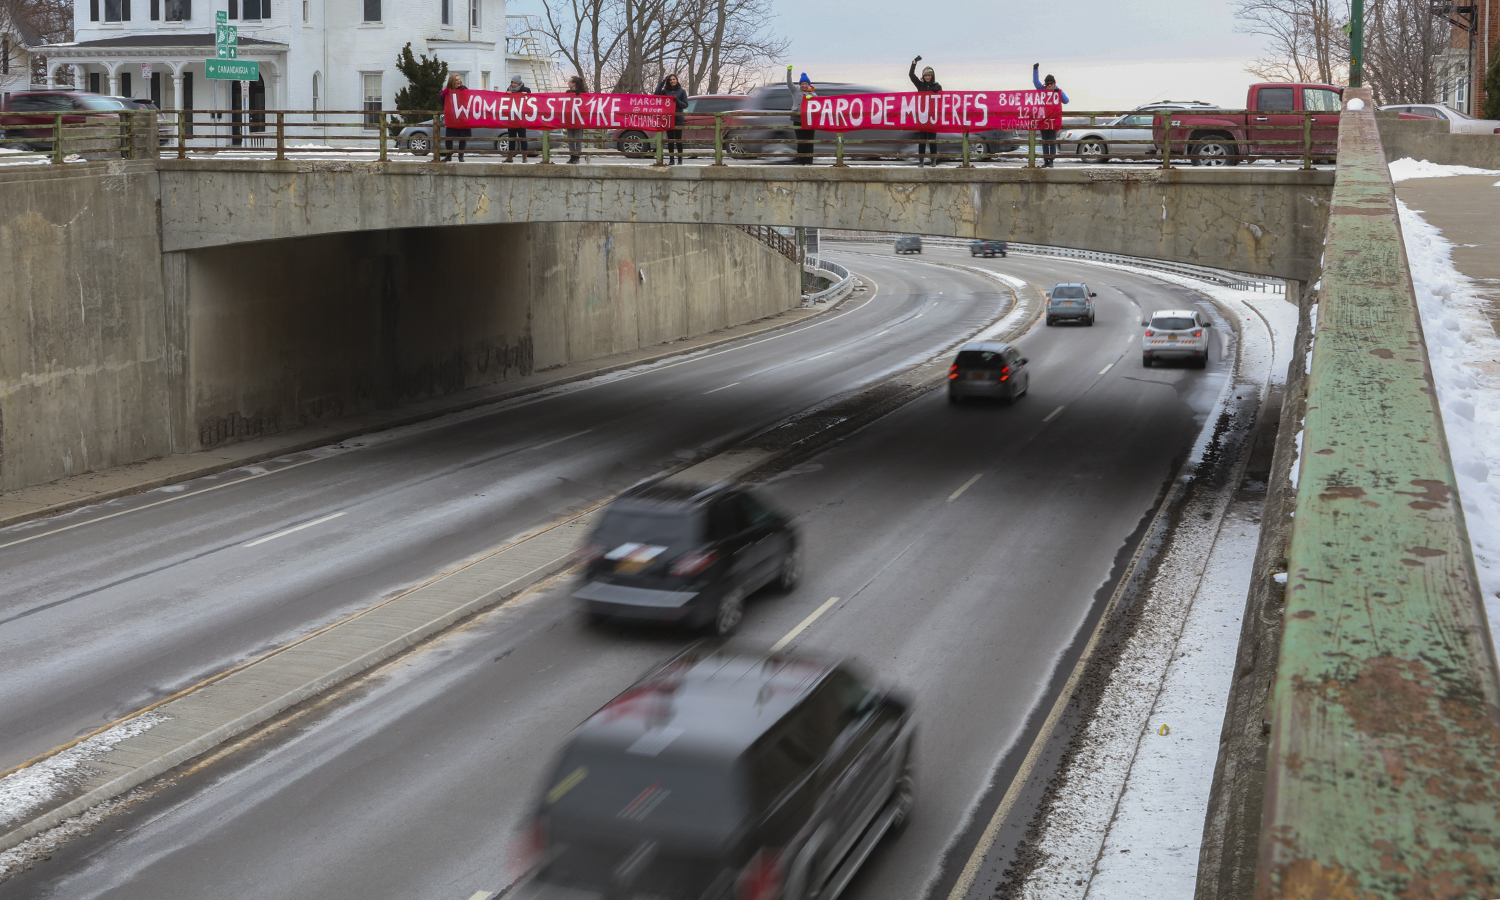 On Monday morning, members Geneva Women's Assembly held banners in English and Spanish over Route 5 and 20, announcing the March 8th International Women's Strike to Geneva commuters.